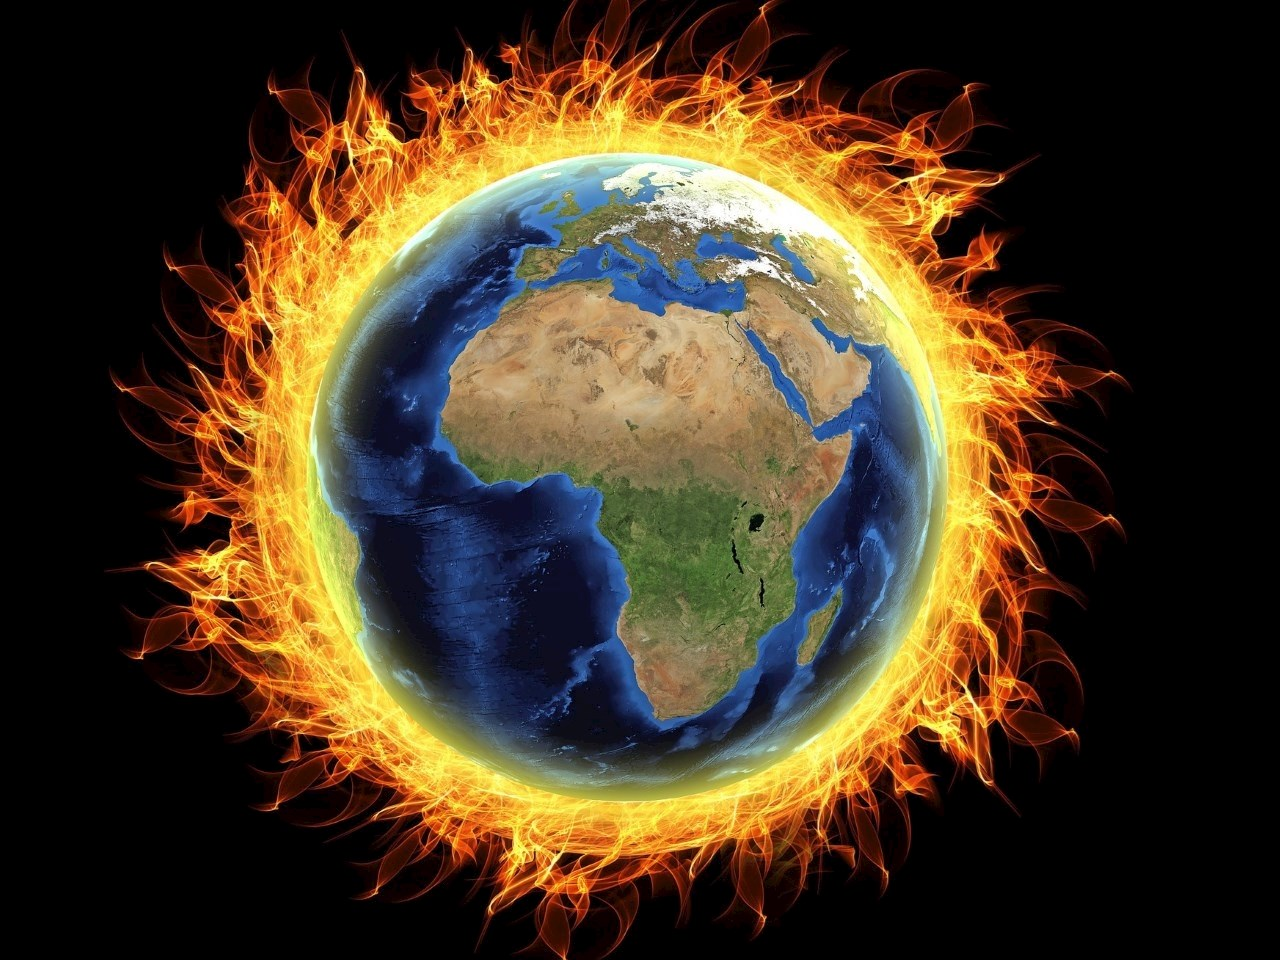 Earth is burning according to some